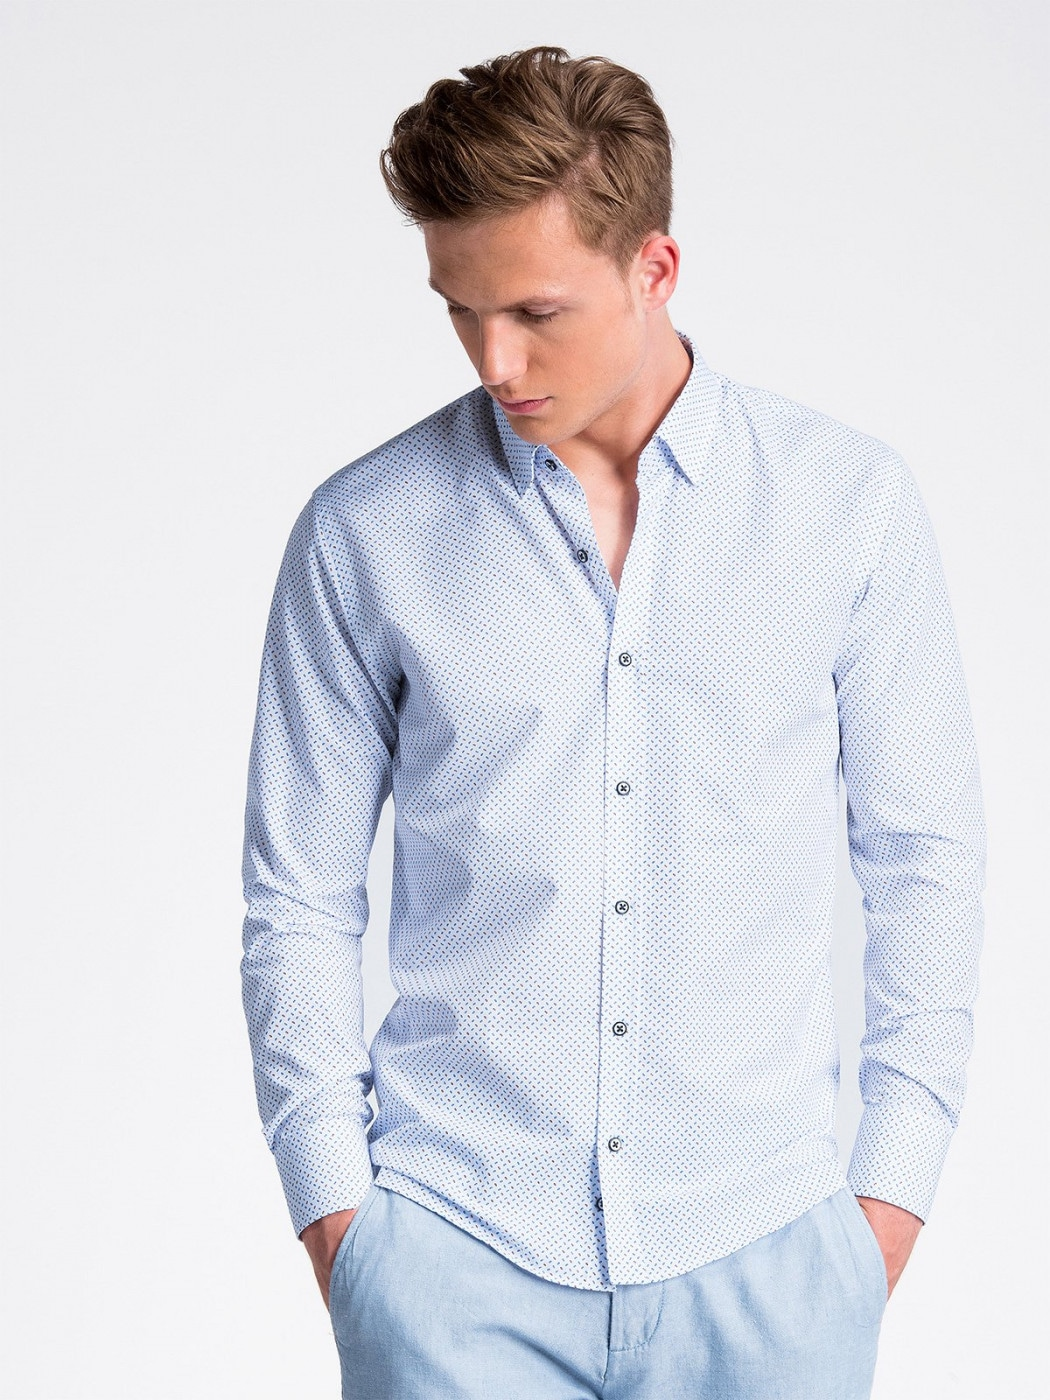 Ombre Clothing Men's shirt with long sleeves K477